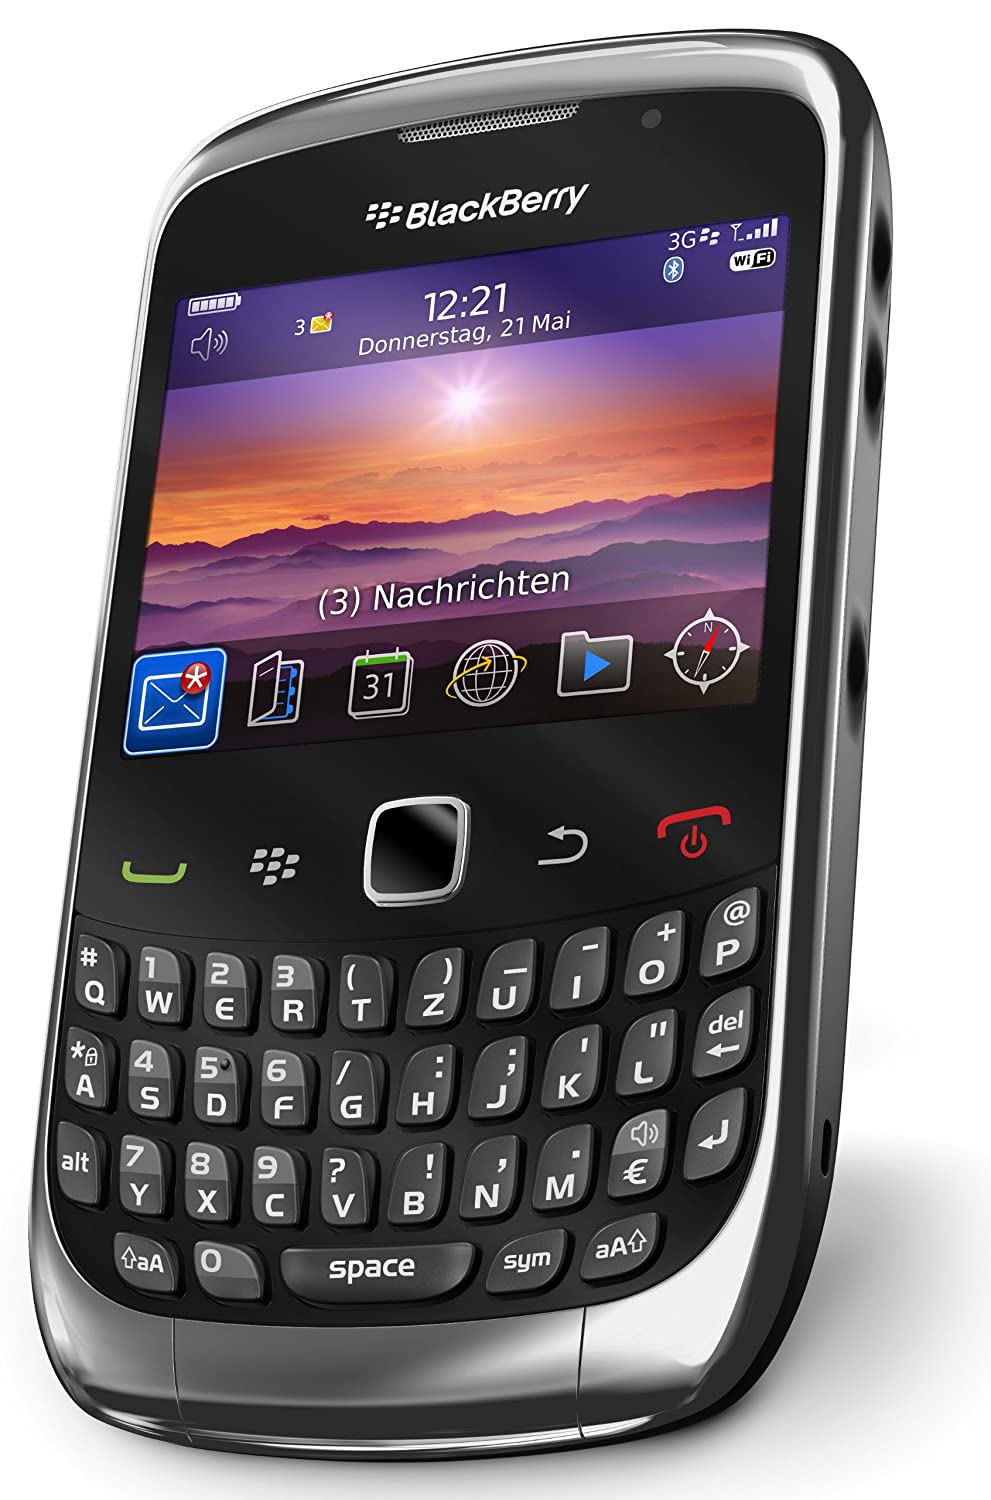 Pdf Viewer For Blackberry Curve 9300